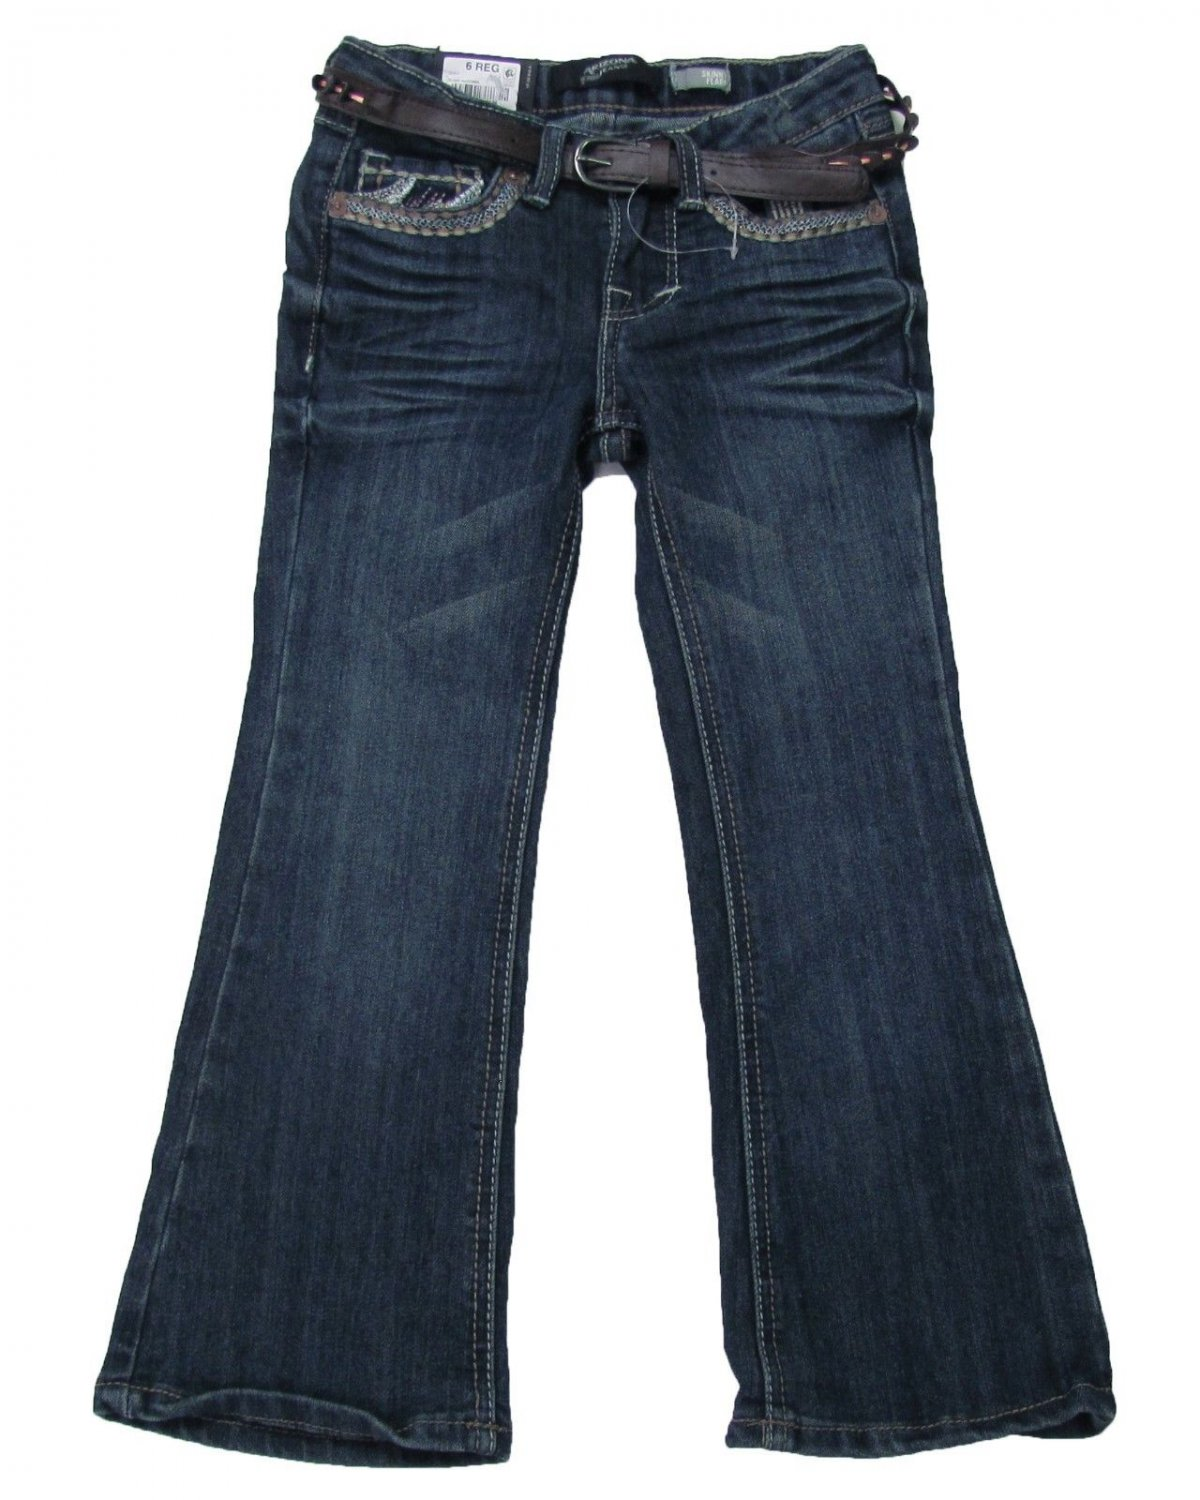 Arizona Girls 12 Skinny Flare Leg Jeans with Brown Belt Clash Madonna Blue Youth